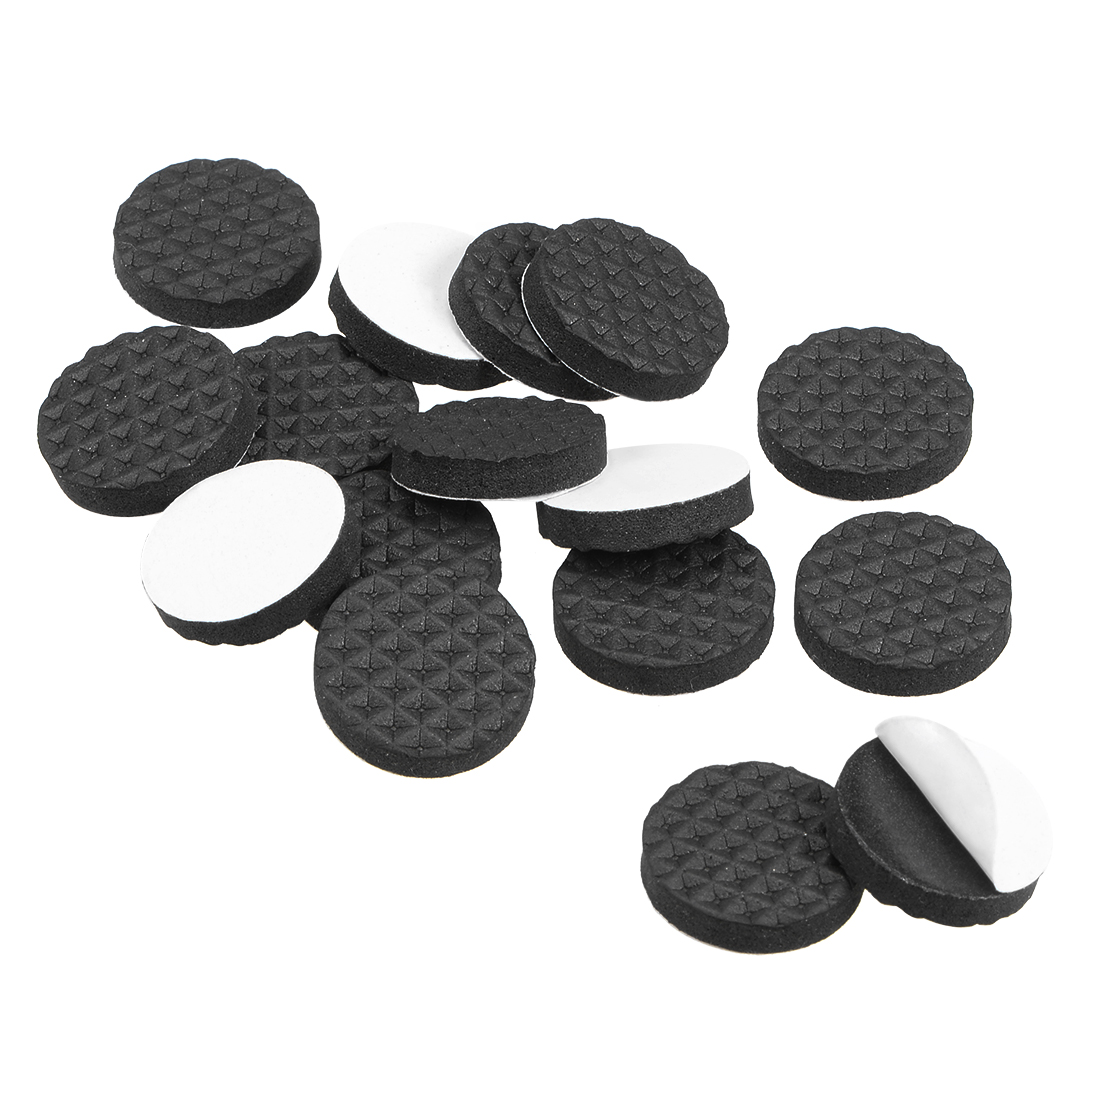 Furniture Pads Adhesive Rubber Pads 20mm Dia 4mm Thick Round Black 36Pcs